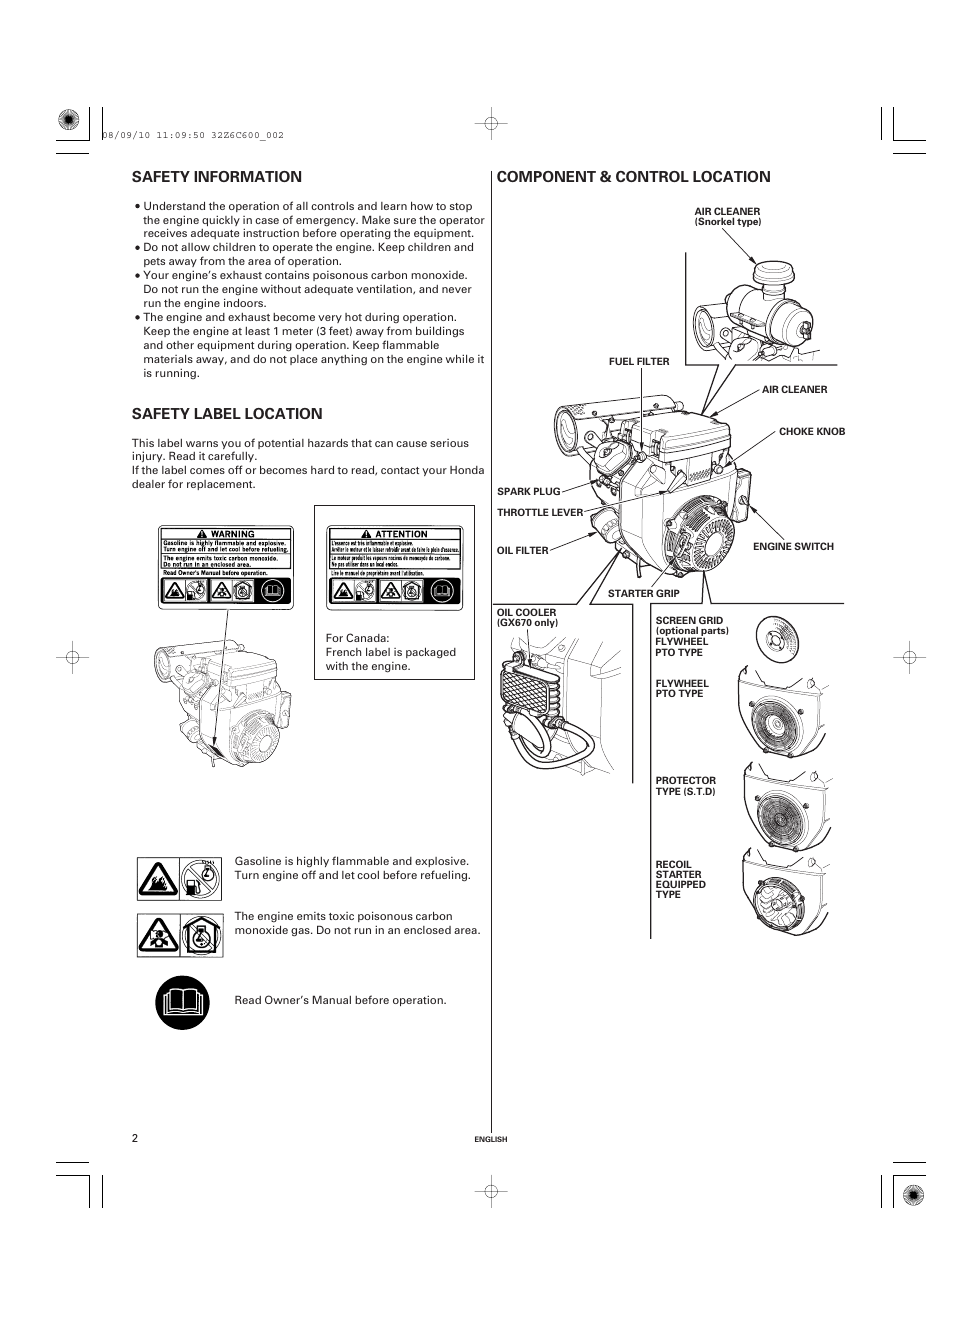 Safety information, Safety label location, Component